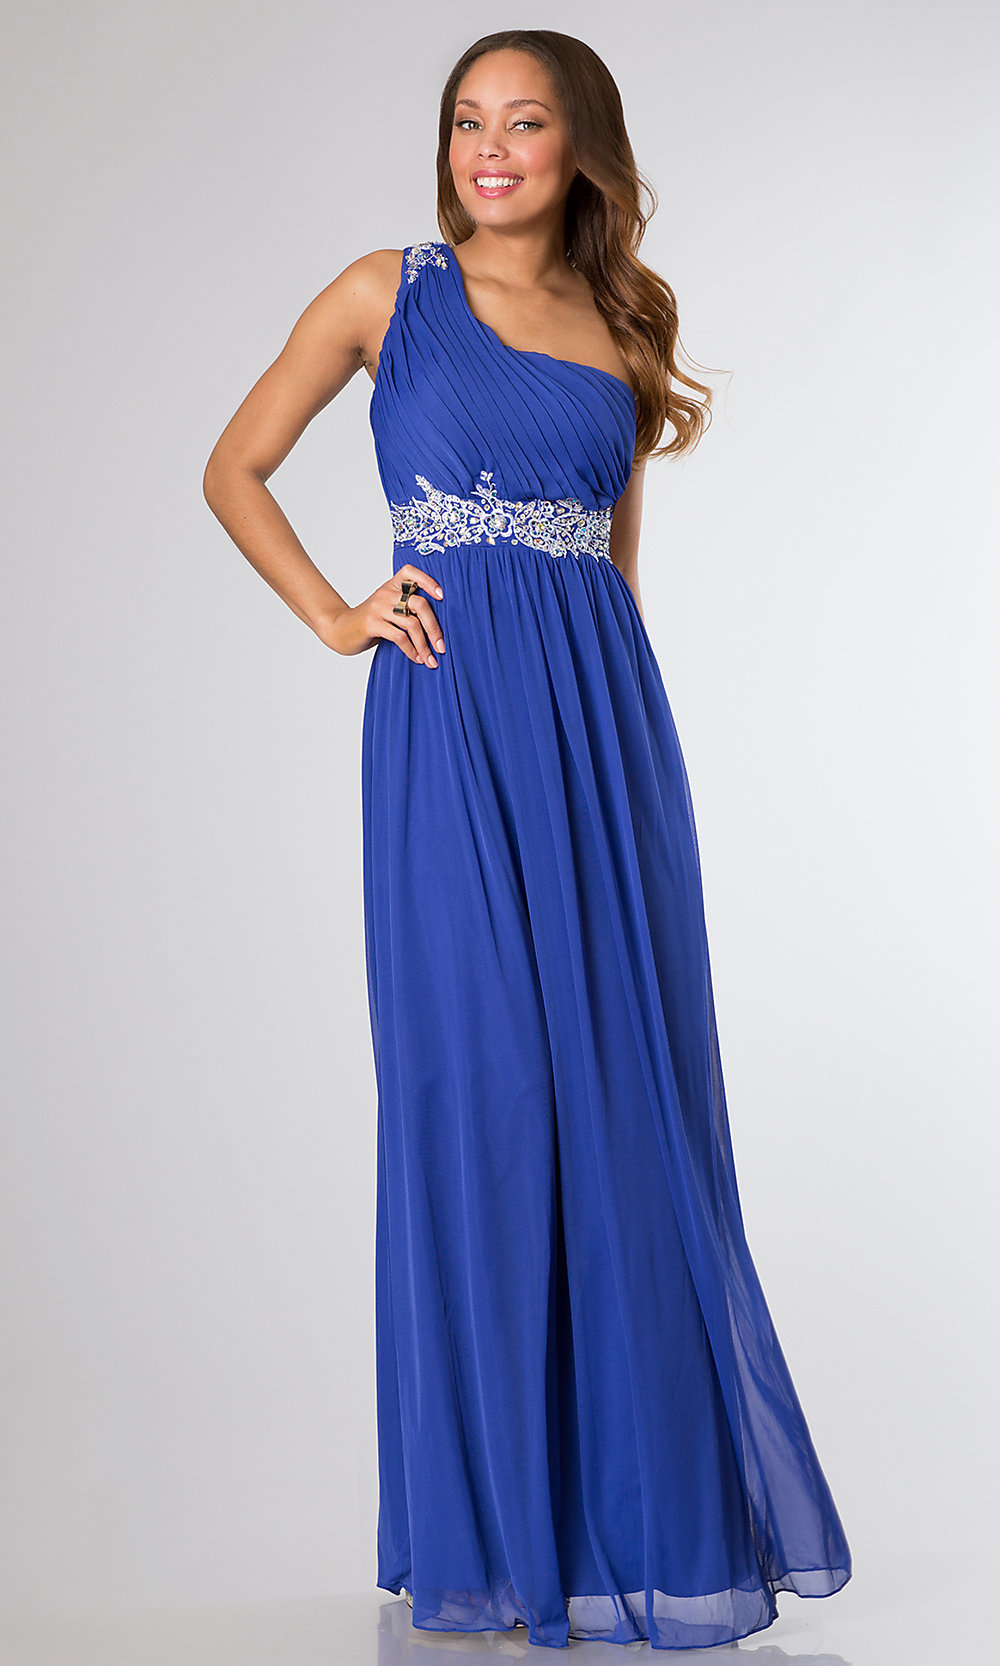 Long One-Shoulder Prom Dress - PromGirl